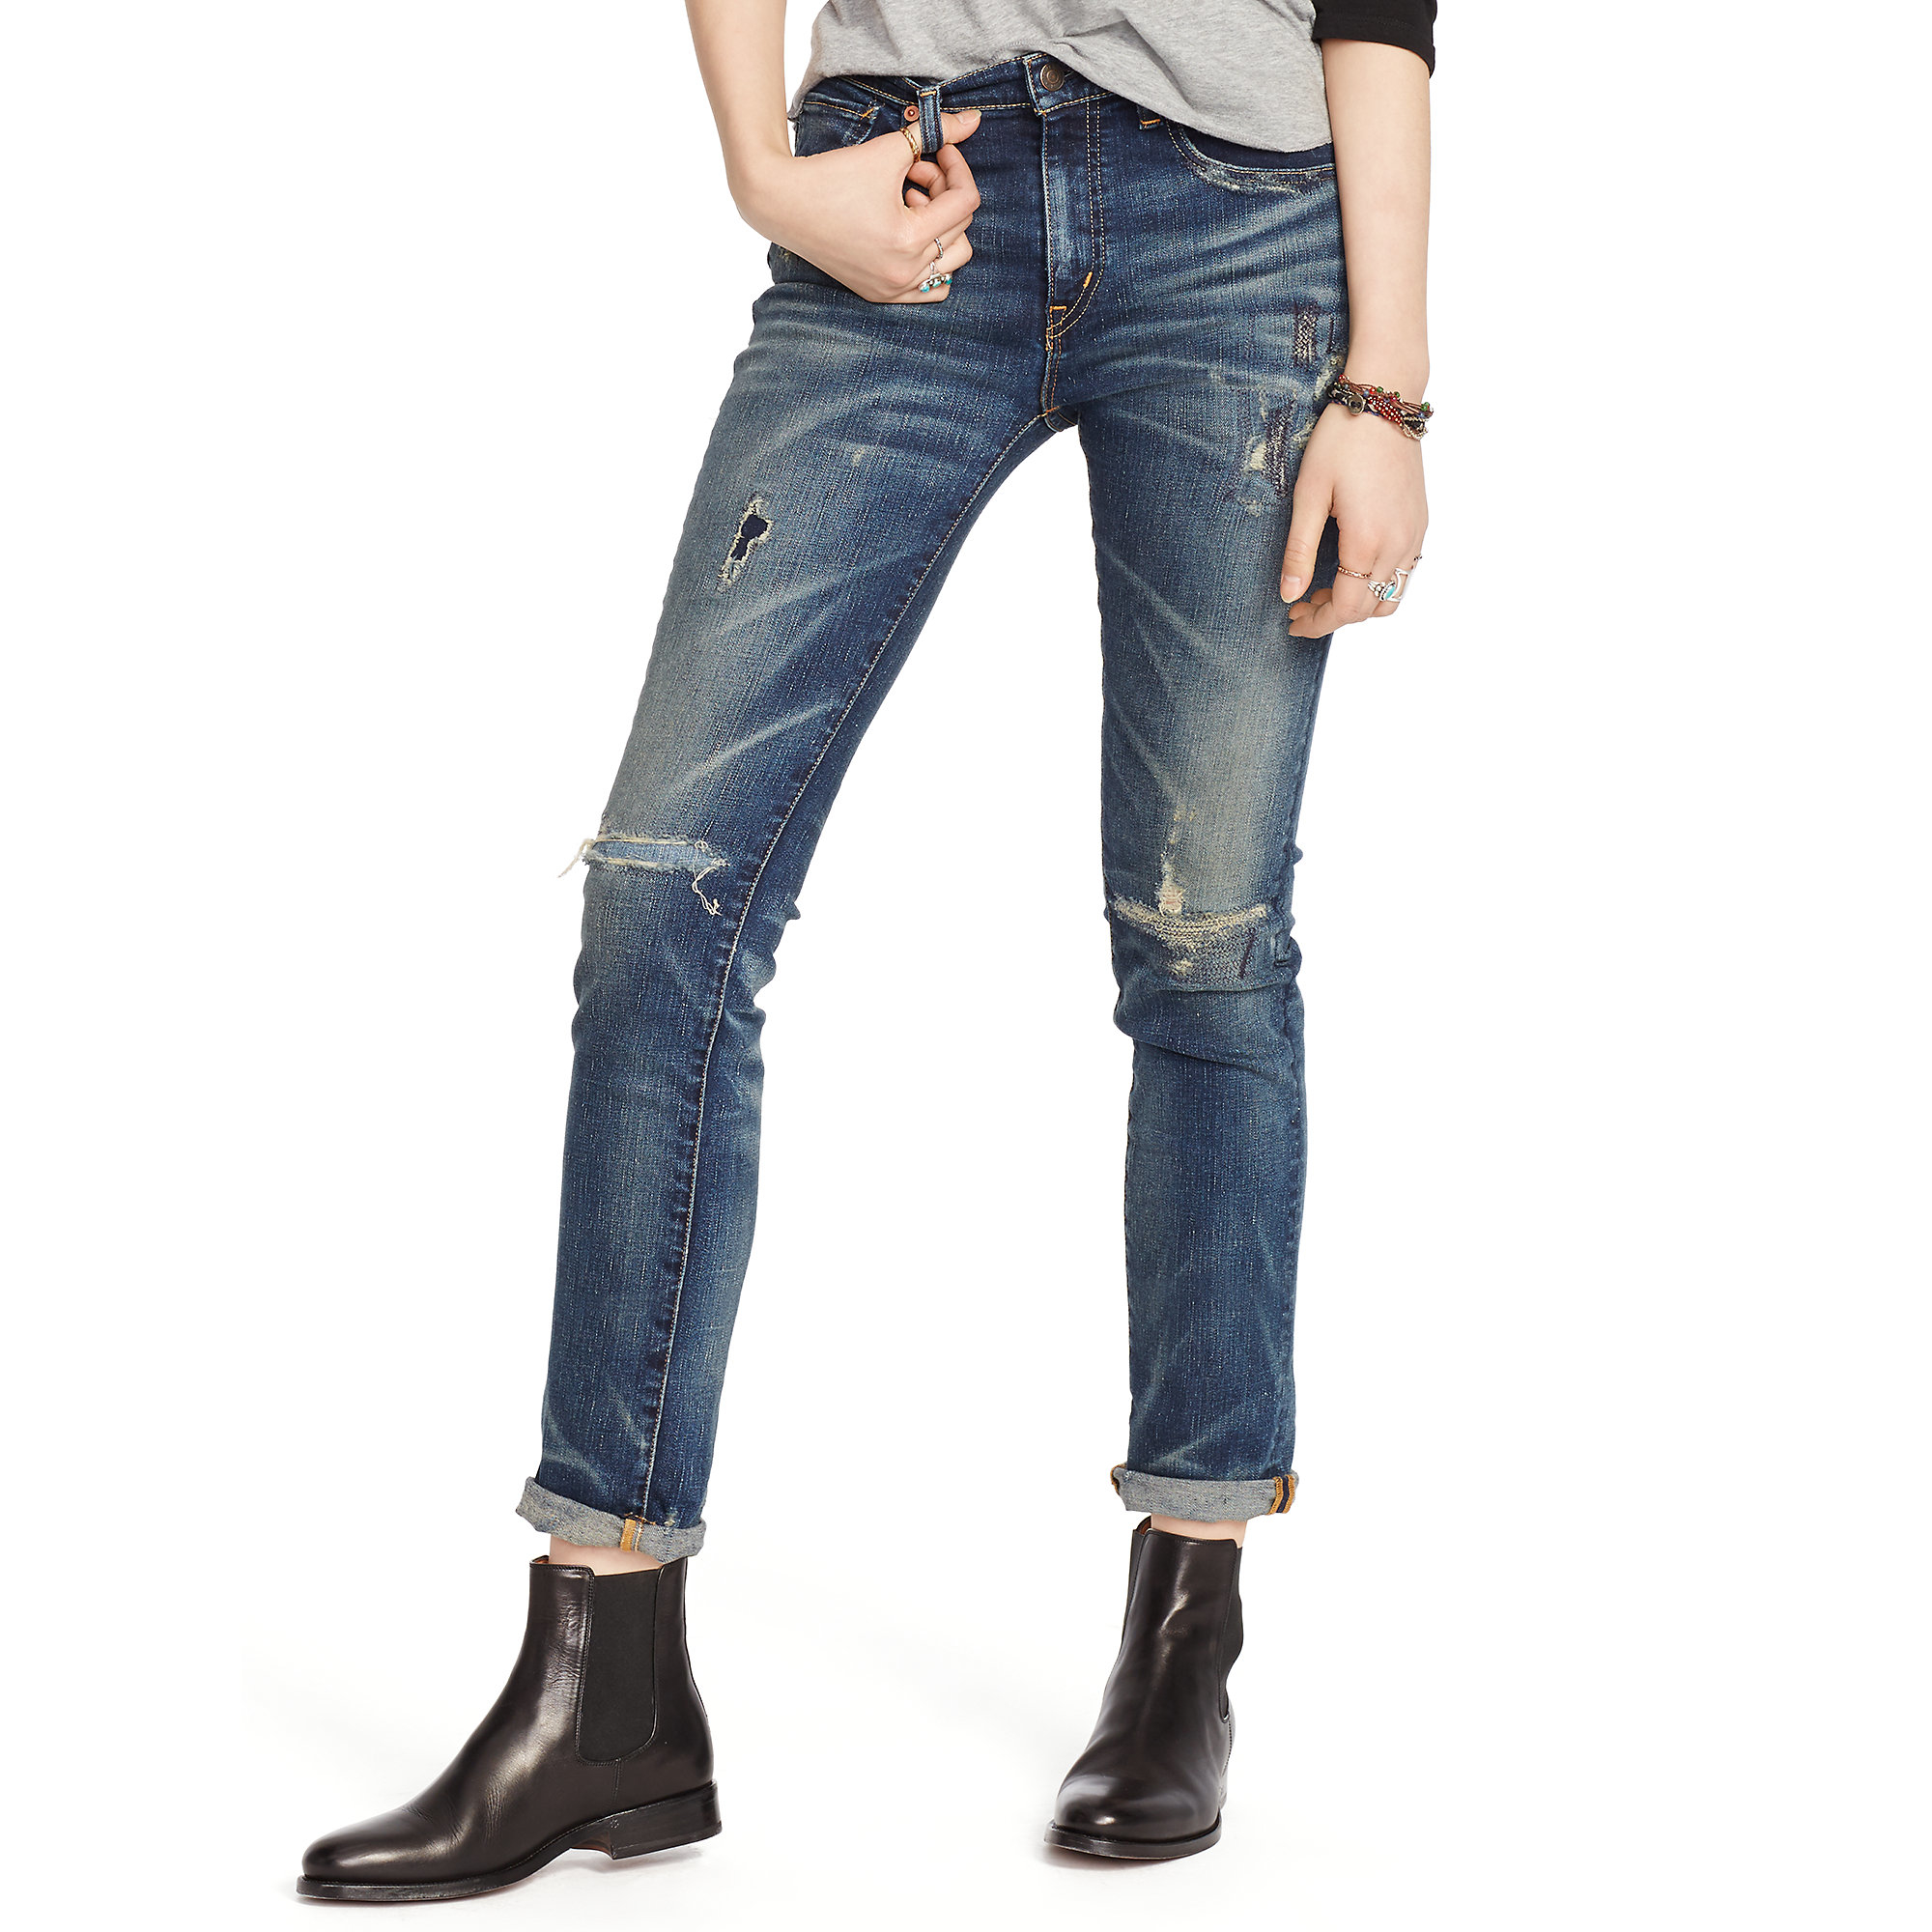 7b05778353 Denim & Supply Ralph Lauren Hemlock High-rise Skinny Jean in Blue - Lyst